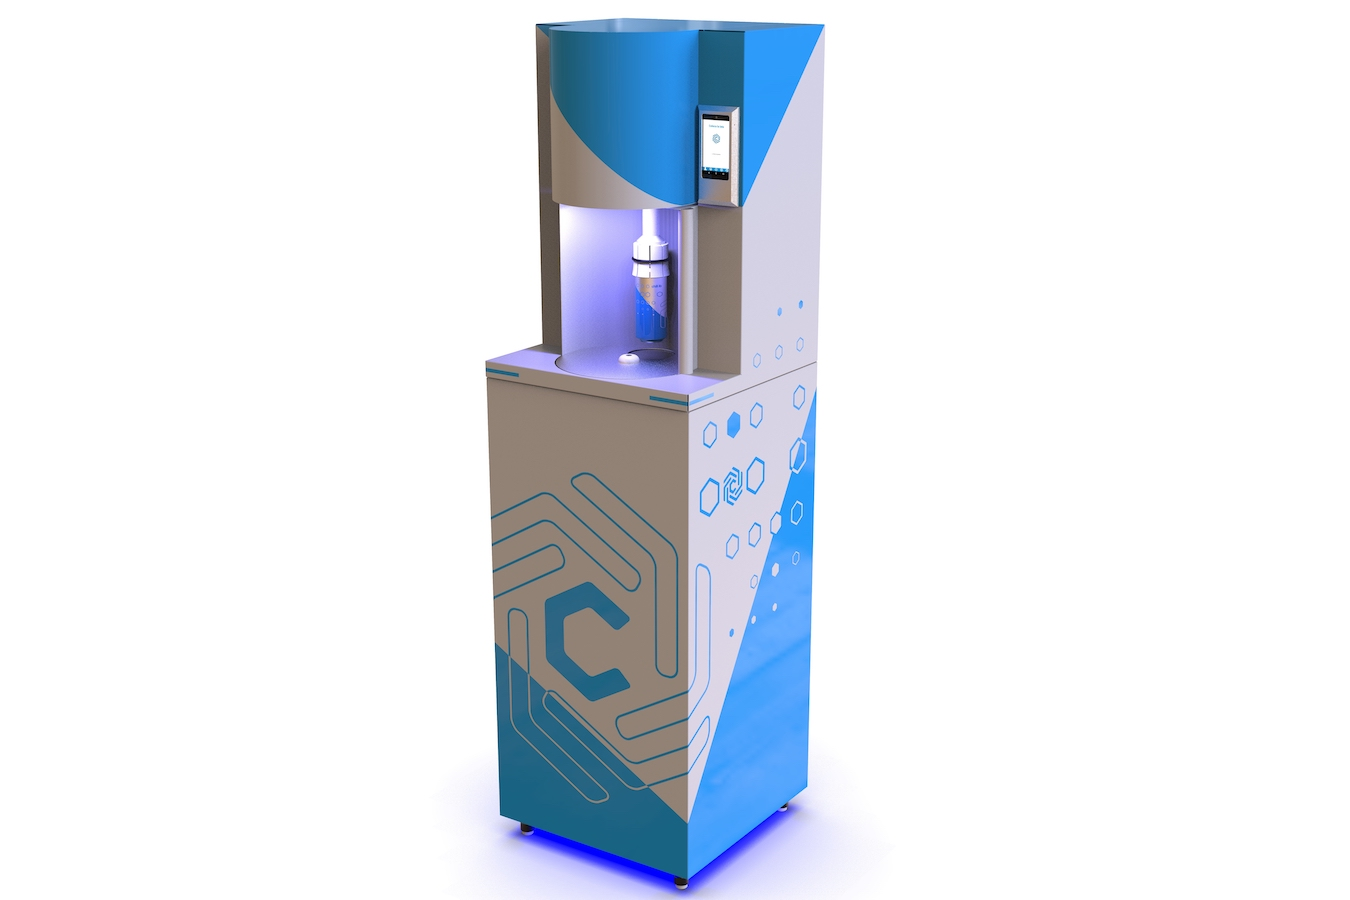 Product picture of chill it